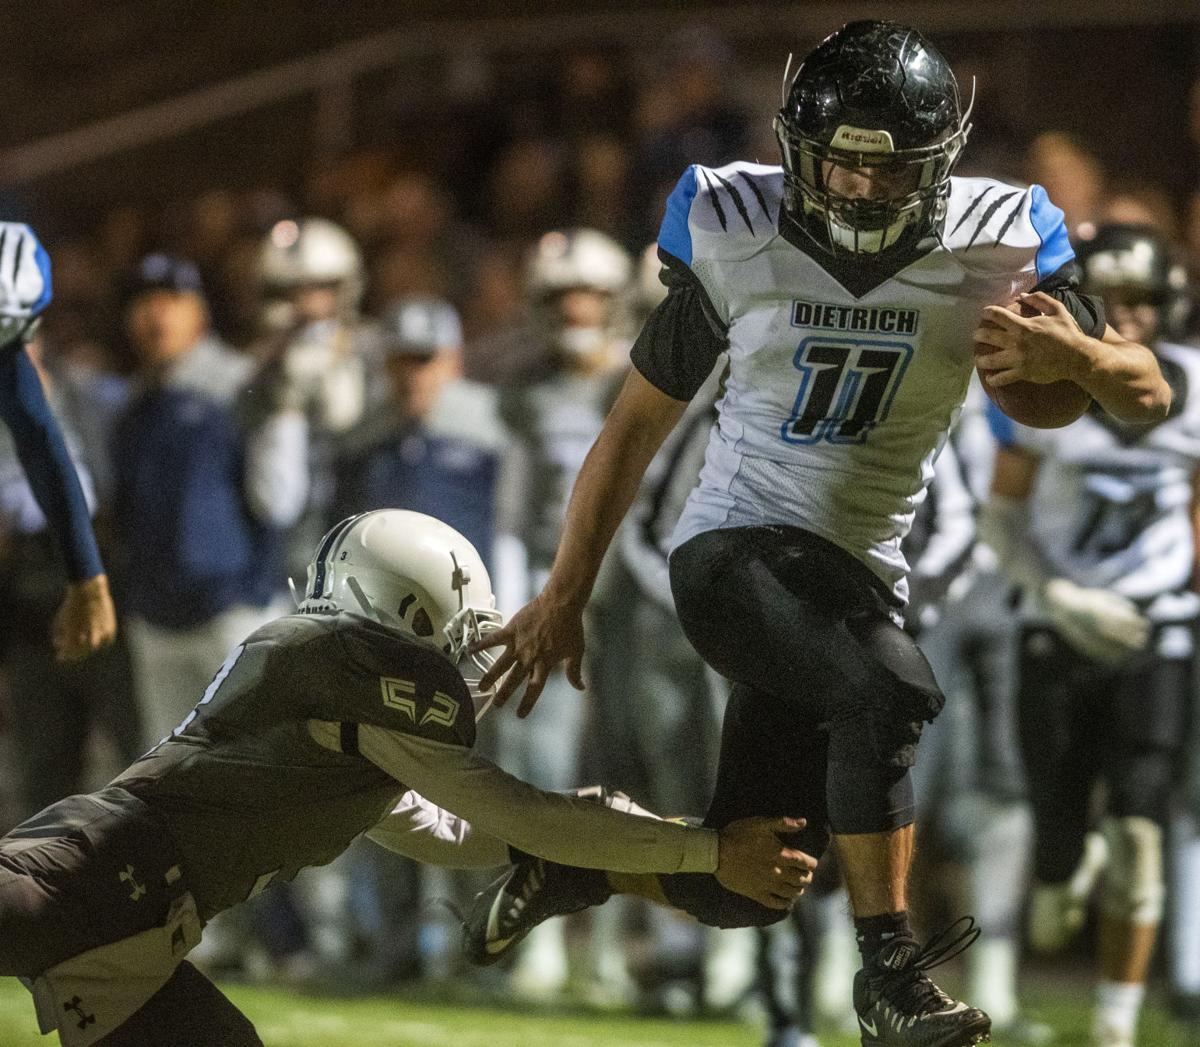 Lighthouse Christian faces Dietrich in quarterfinals